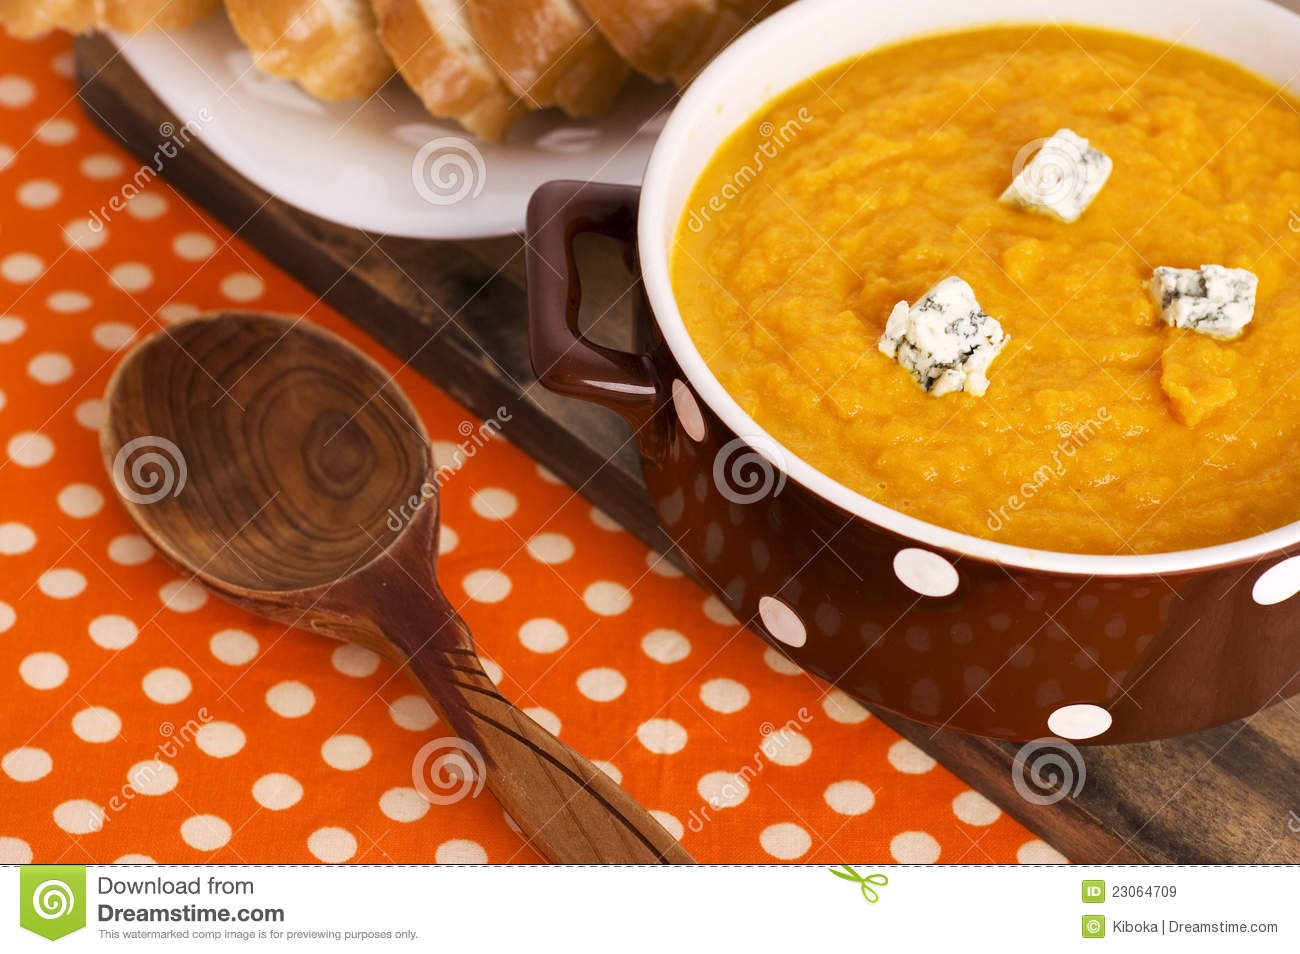 Carrot Soup Royalty Free Stock Images - Image: 23064709